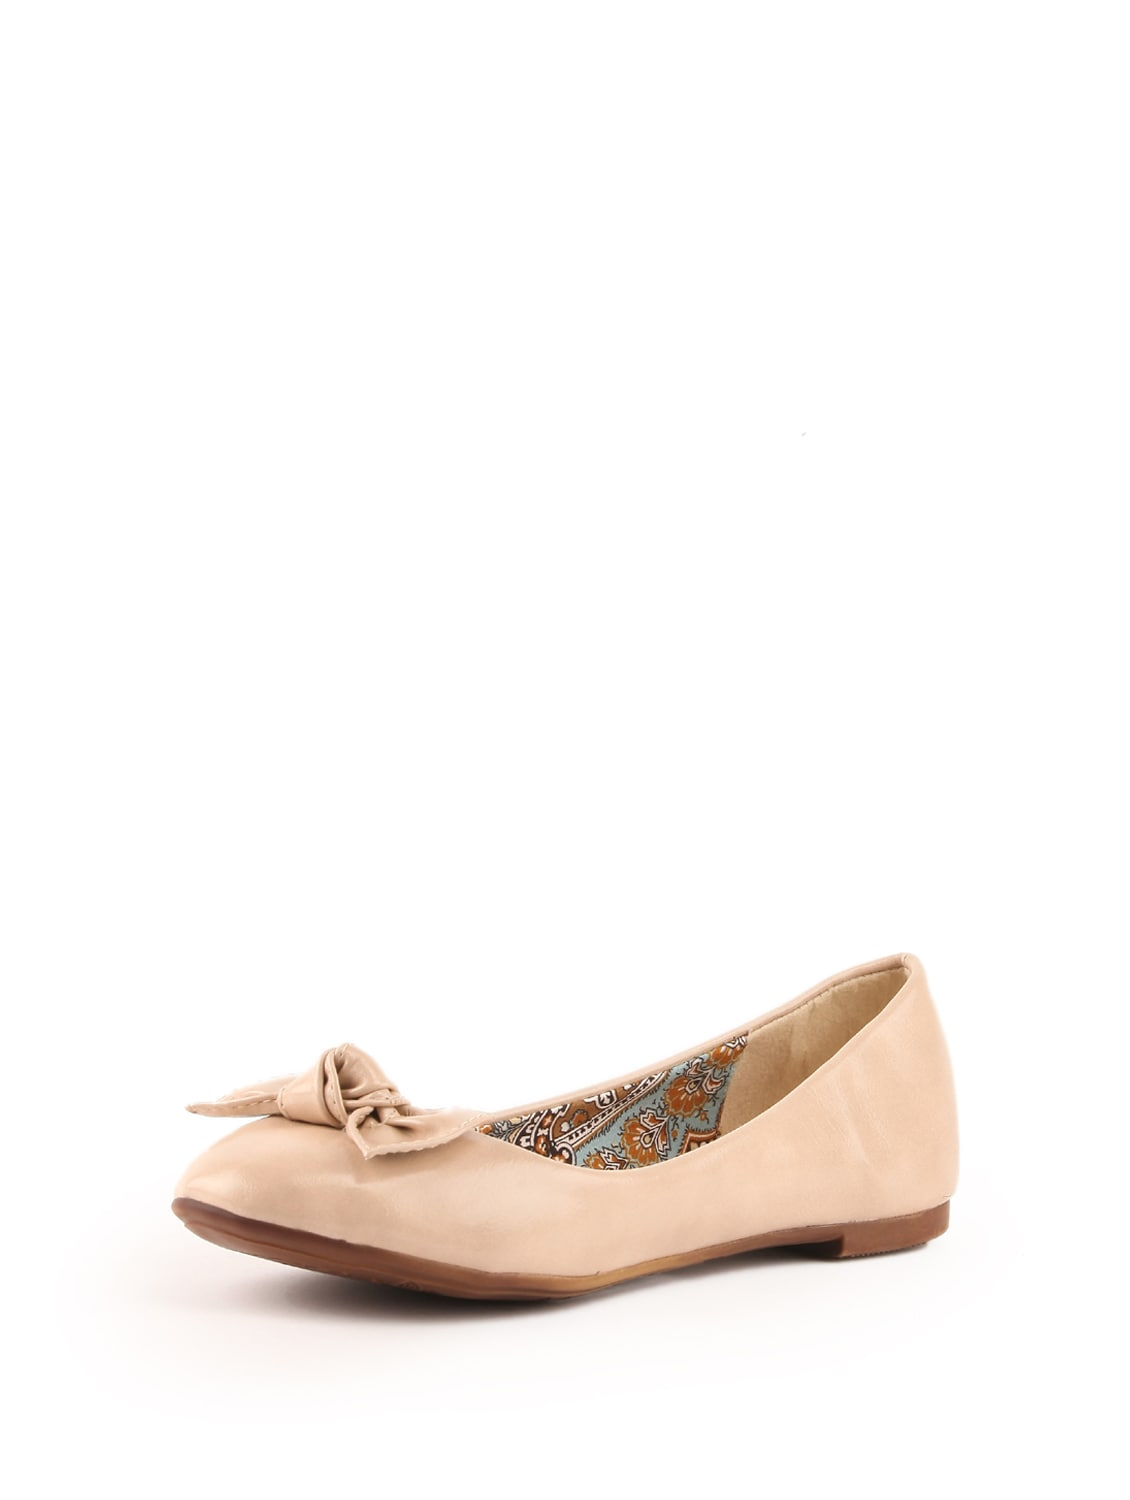 914be839ab Buy Must Have Nude Ballet Flats for Women from Solo Voga for ₹1700 at 0%  off | 2019 Limeroad.com